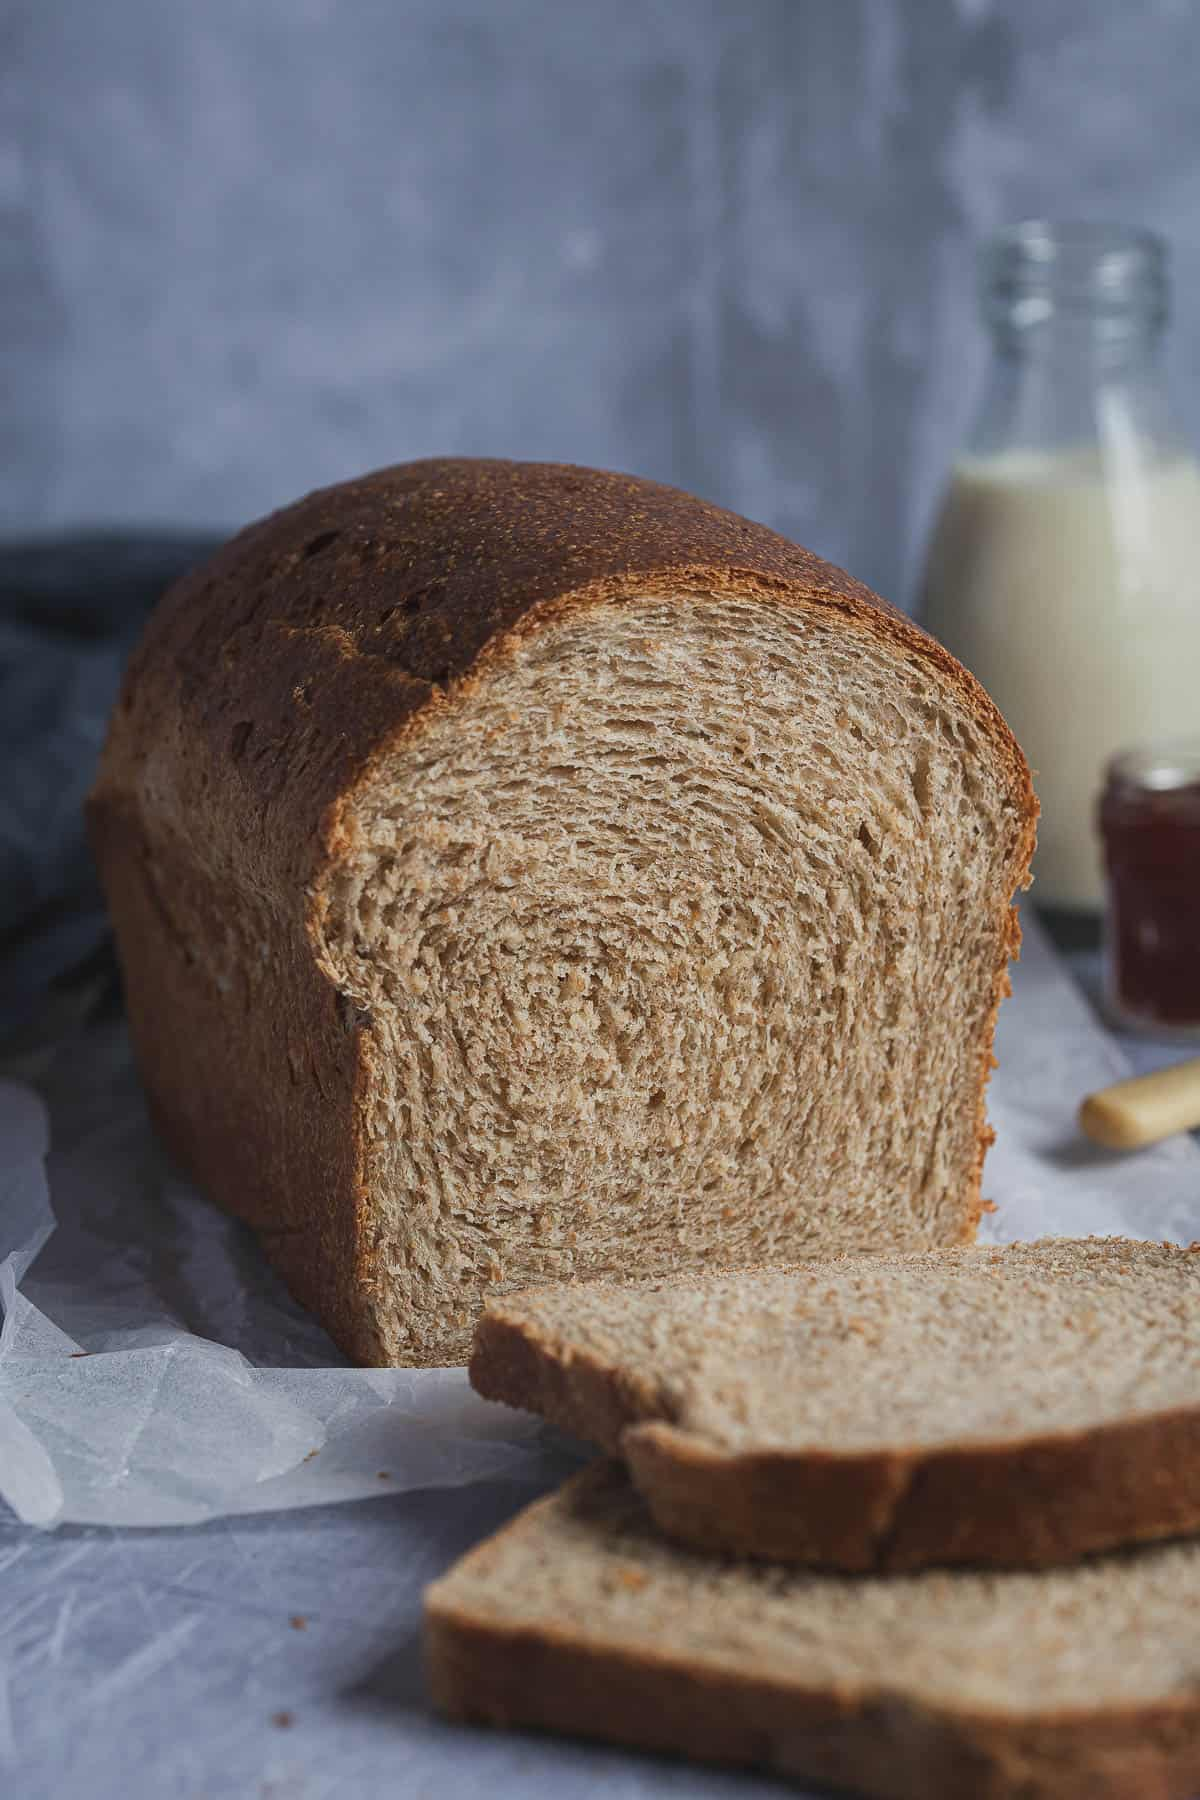 A loaf of vegan wholemeal sandwich bread with two slices cut off and a bottle of milk and jar of jam in the background.